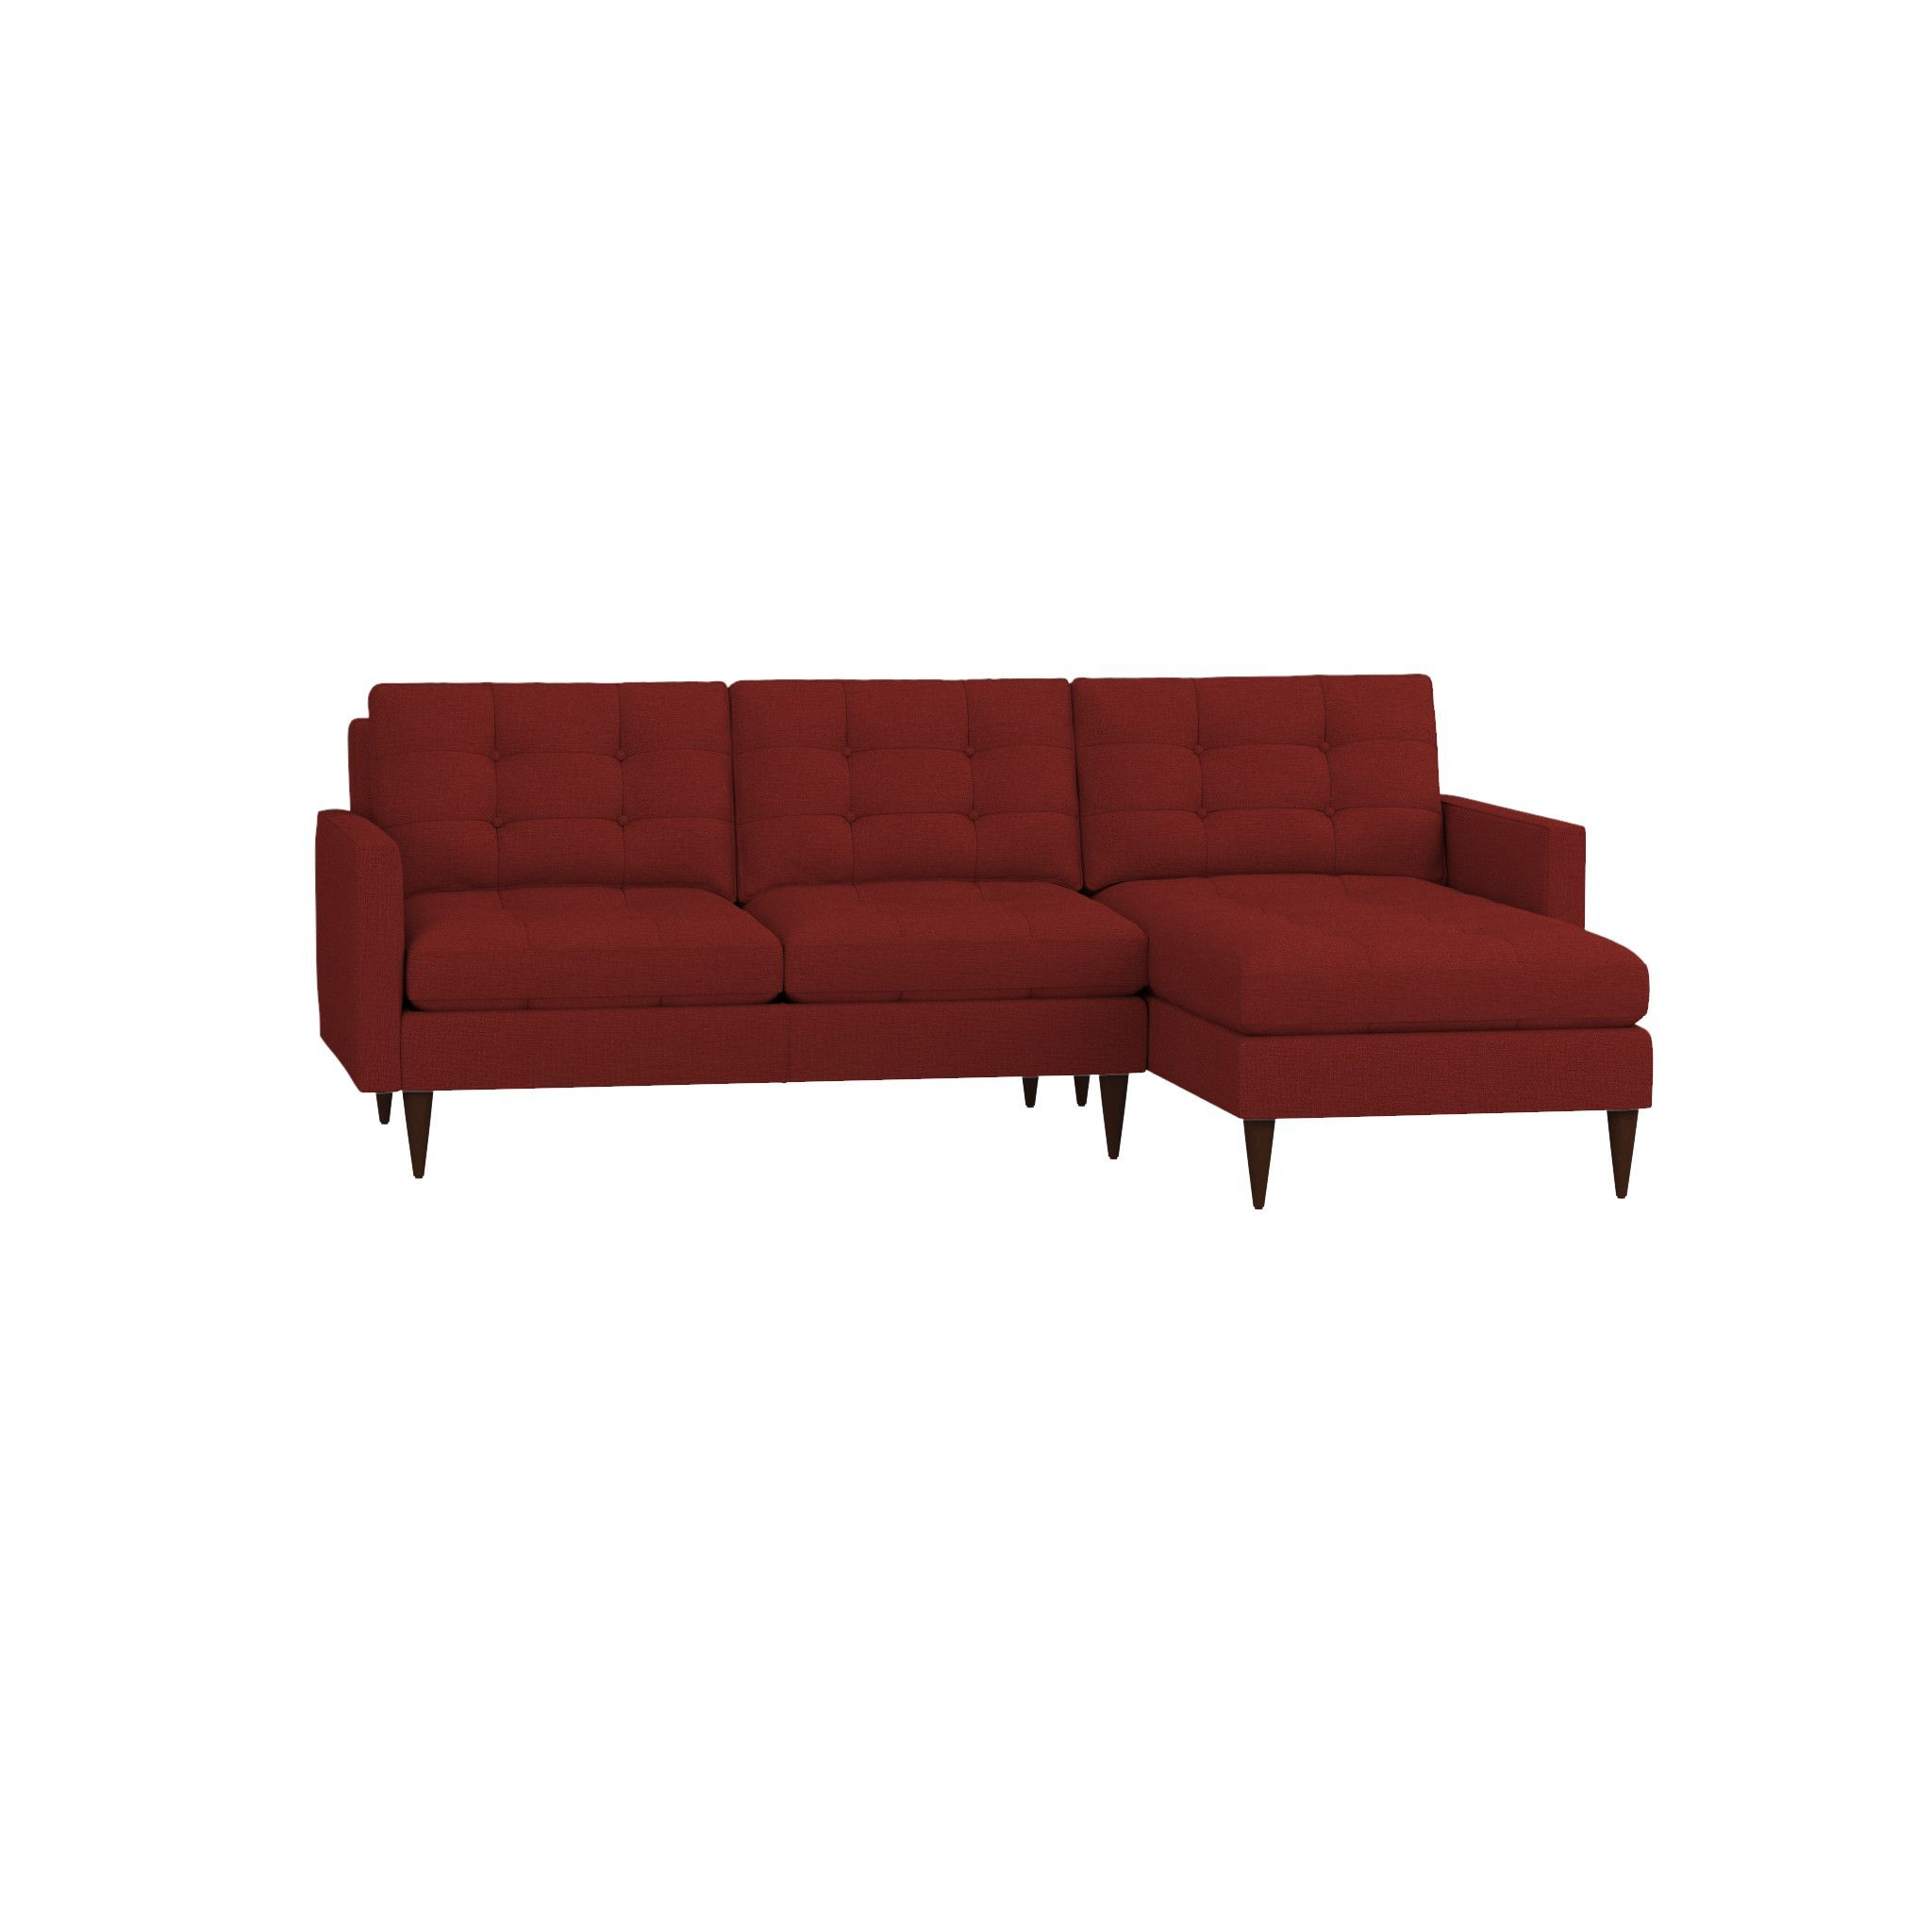 Shop petrie 2 piece right arm chaise sectional sofa now a crate and barrel classic its pure 1960s aesthetic is scaled deep so you can sit firm and upright